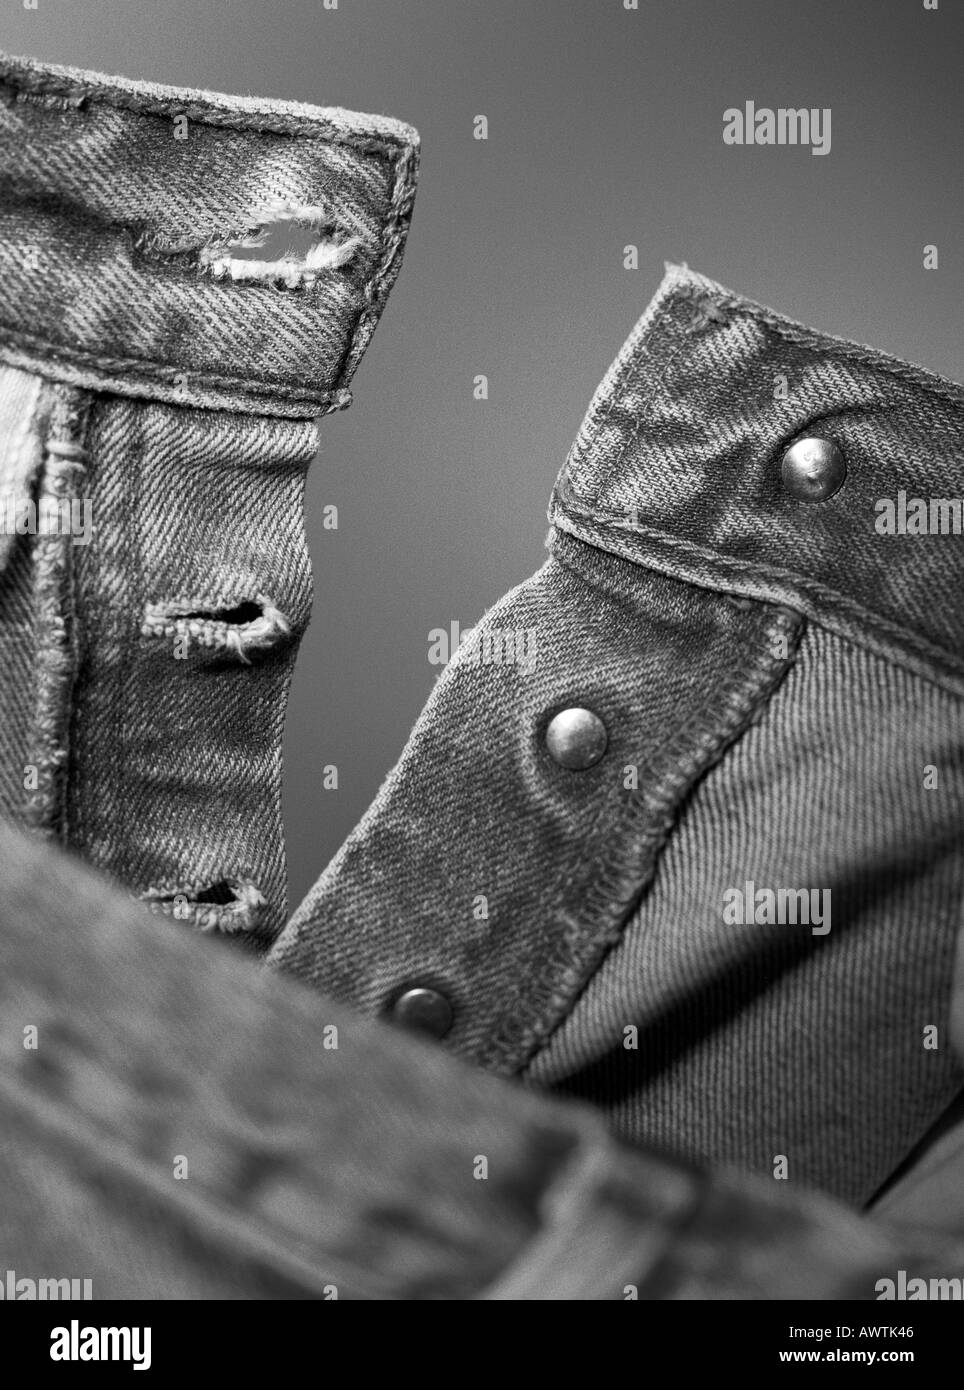 Trousers, close-up - Stock Image